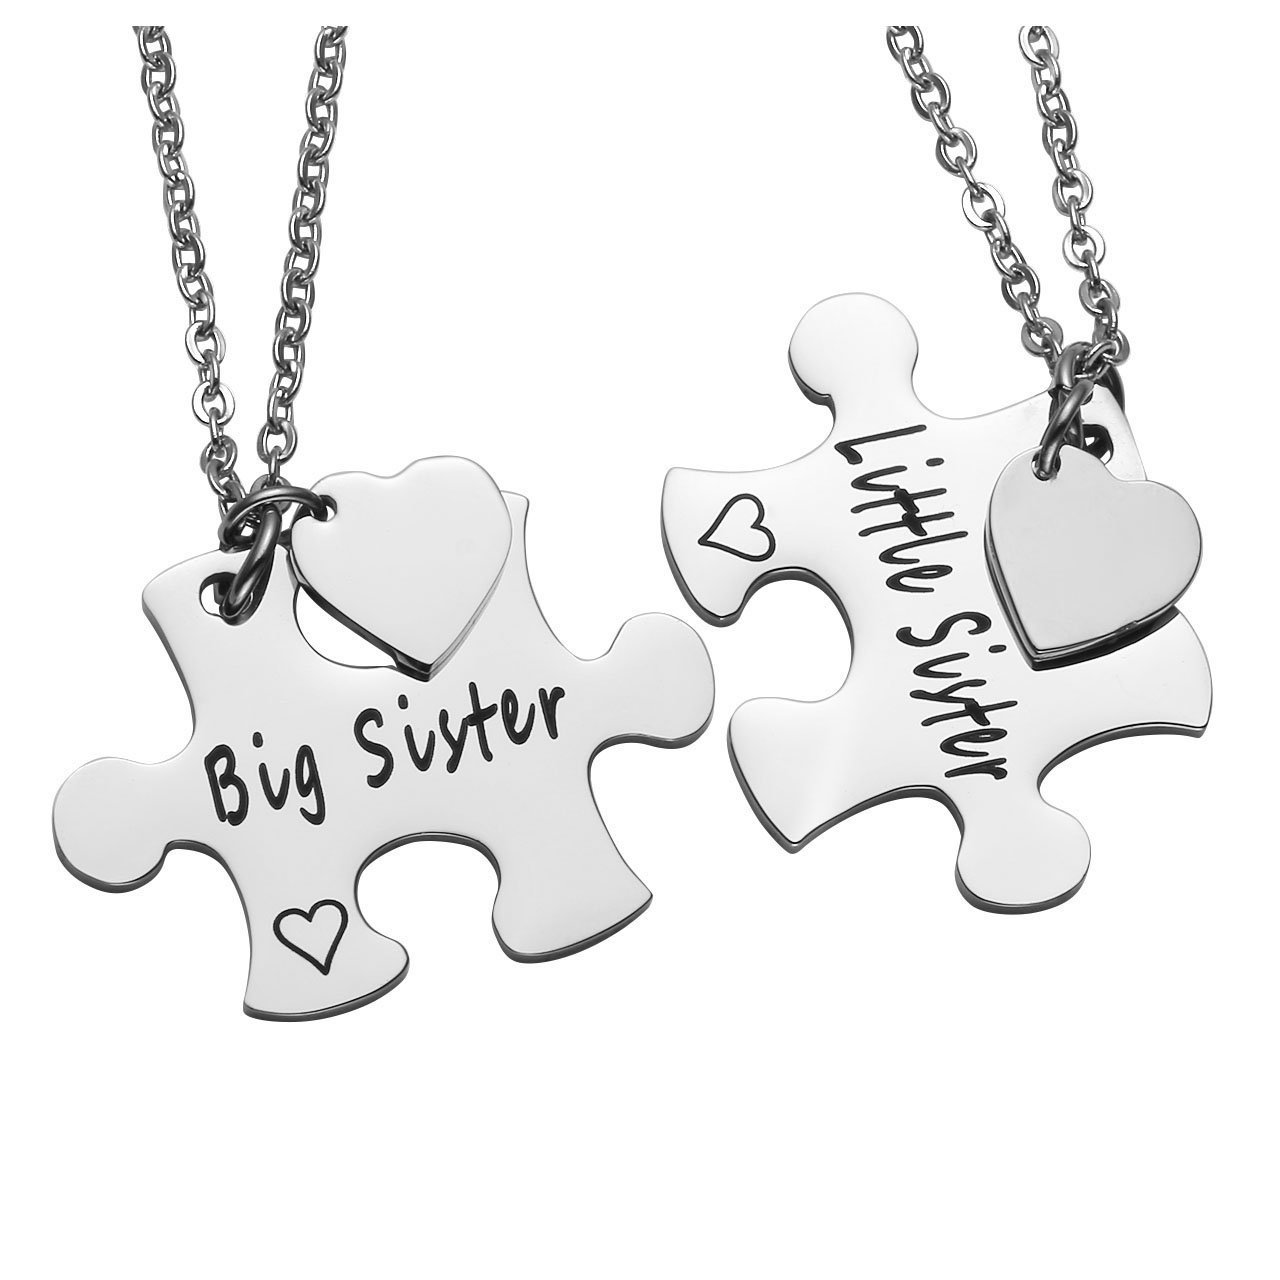 Personalized Master Free Engraving Custom Stainless Steel Big Sister Little Sister Matching Puzzle Pieces Keychain/Necklace Set for Sisters Family Best Friends Gift